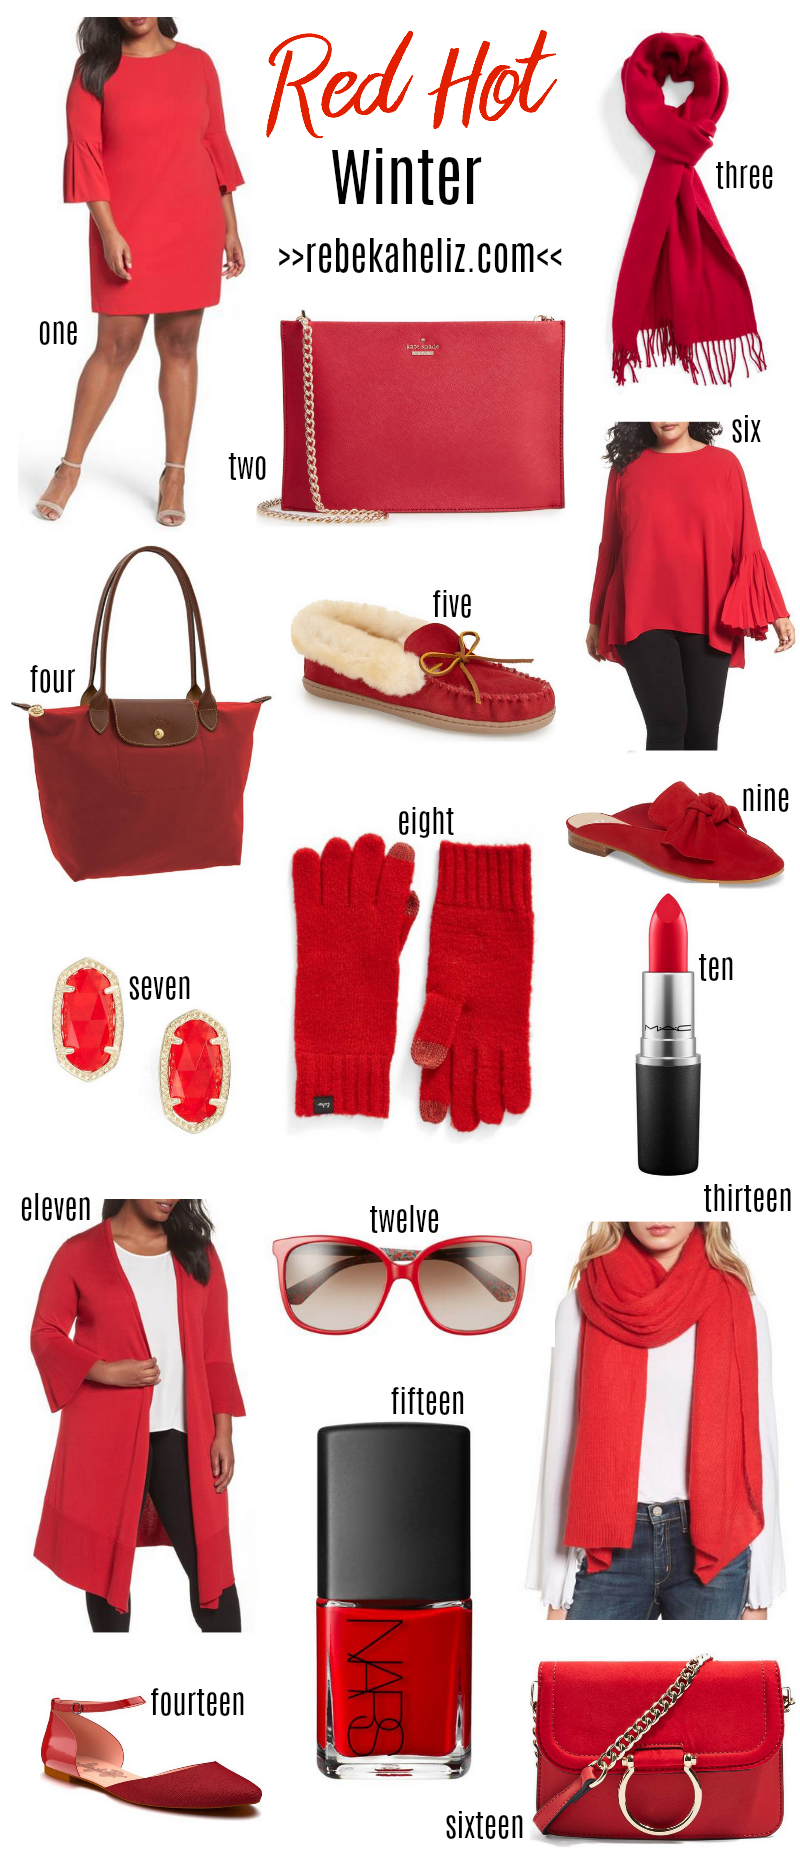 red, red hot, fall style, winter style, red hot winter, red clothes, red accessories, red dress